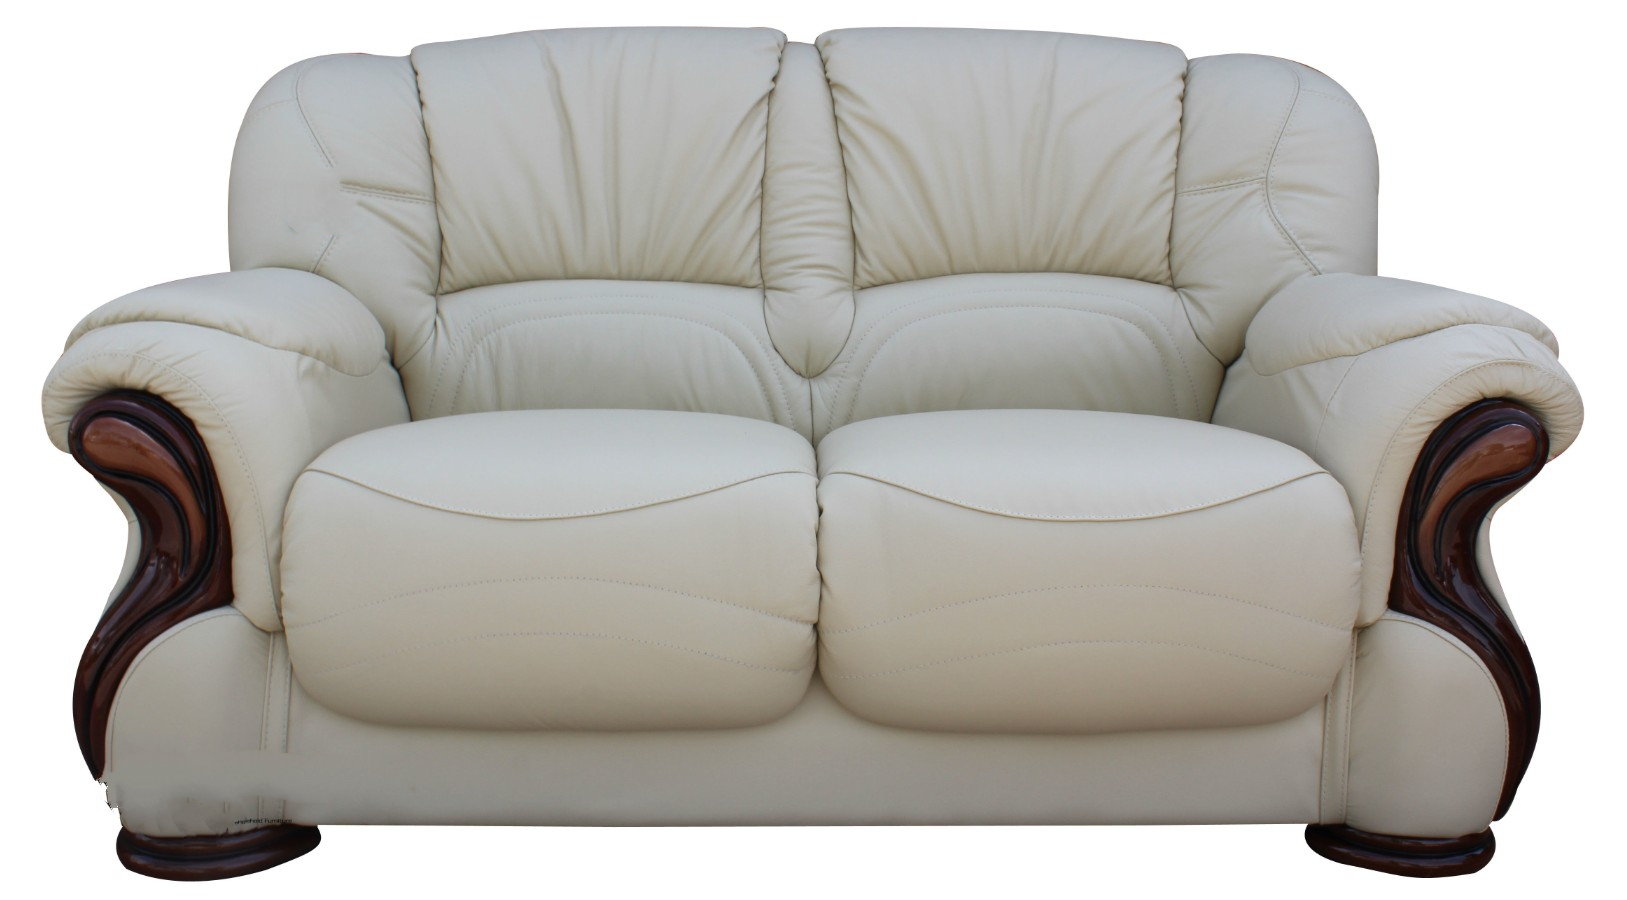 Susanna italian leather 2 seater sofa settee cream offer leather sofas fabric sofas Italian leather sofa uk